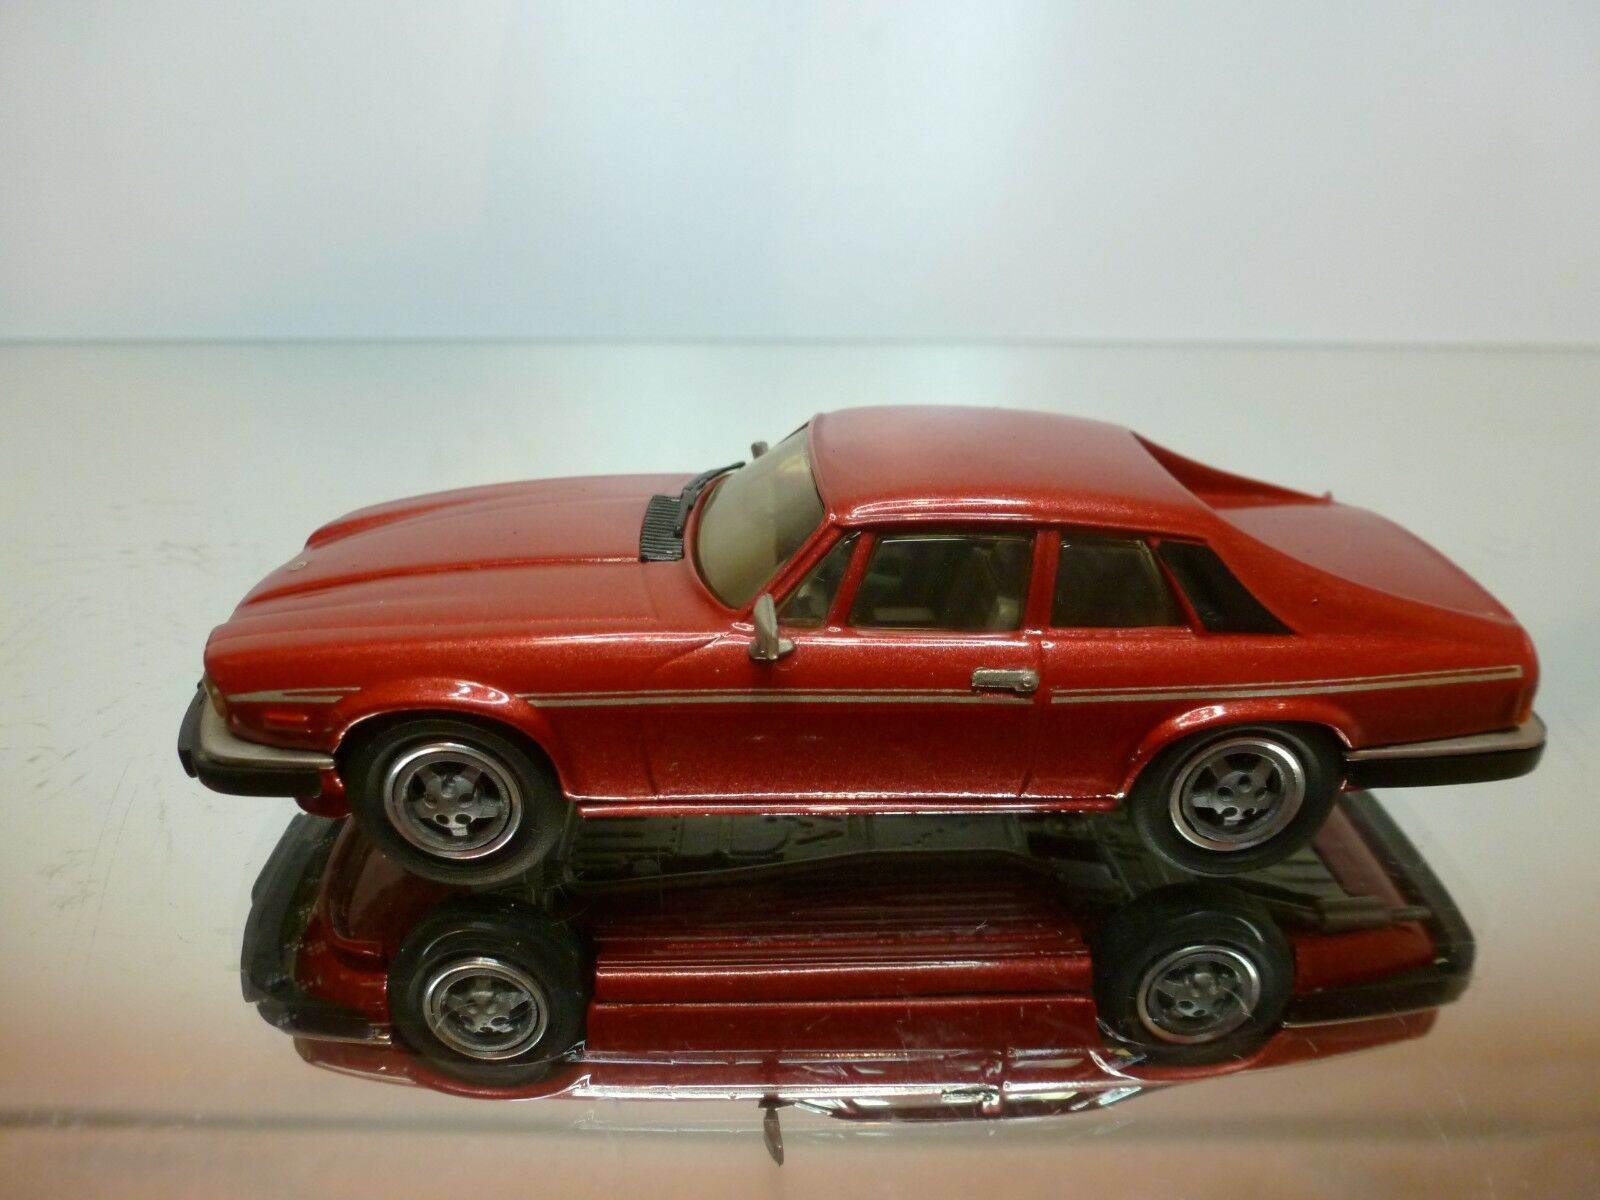 WESTERN MODELS JAGUAR XJS V12 1987    - RED MET 1 43 - EXCELLENT CONDITION - 3+23 a70d7c